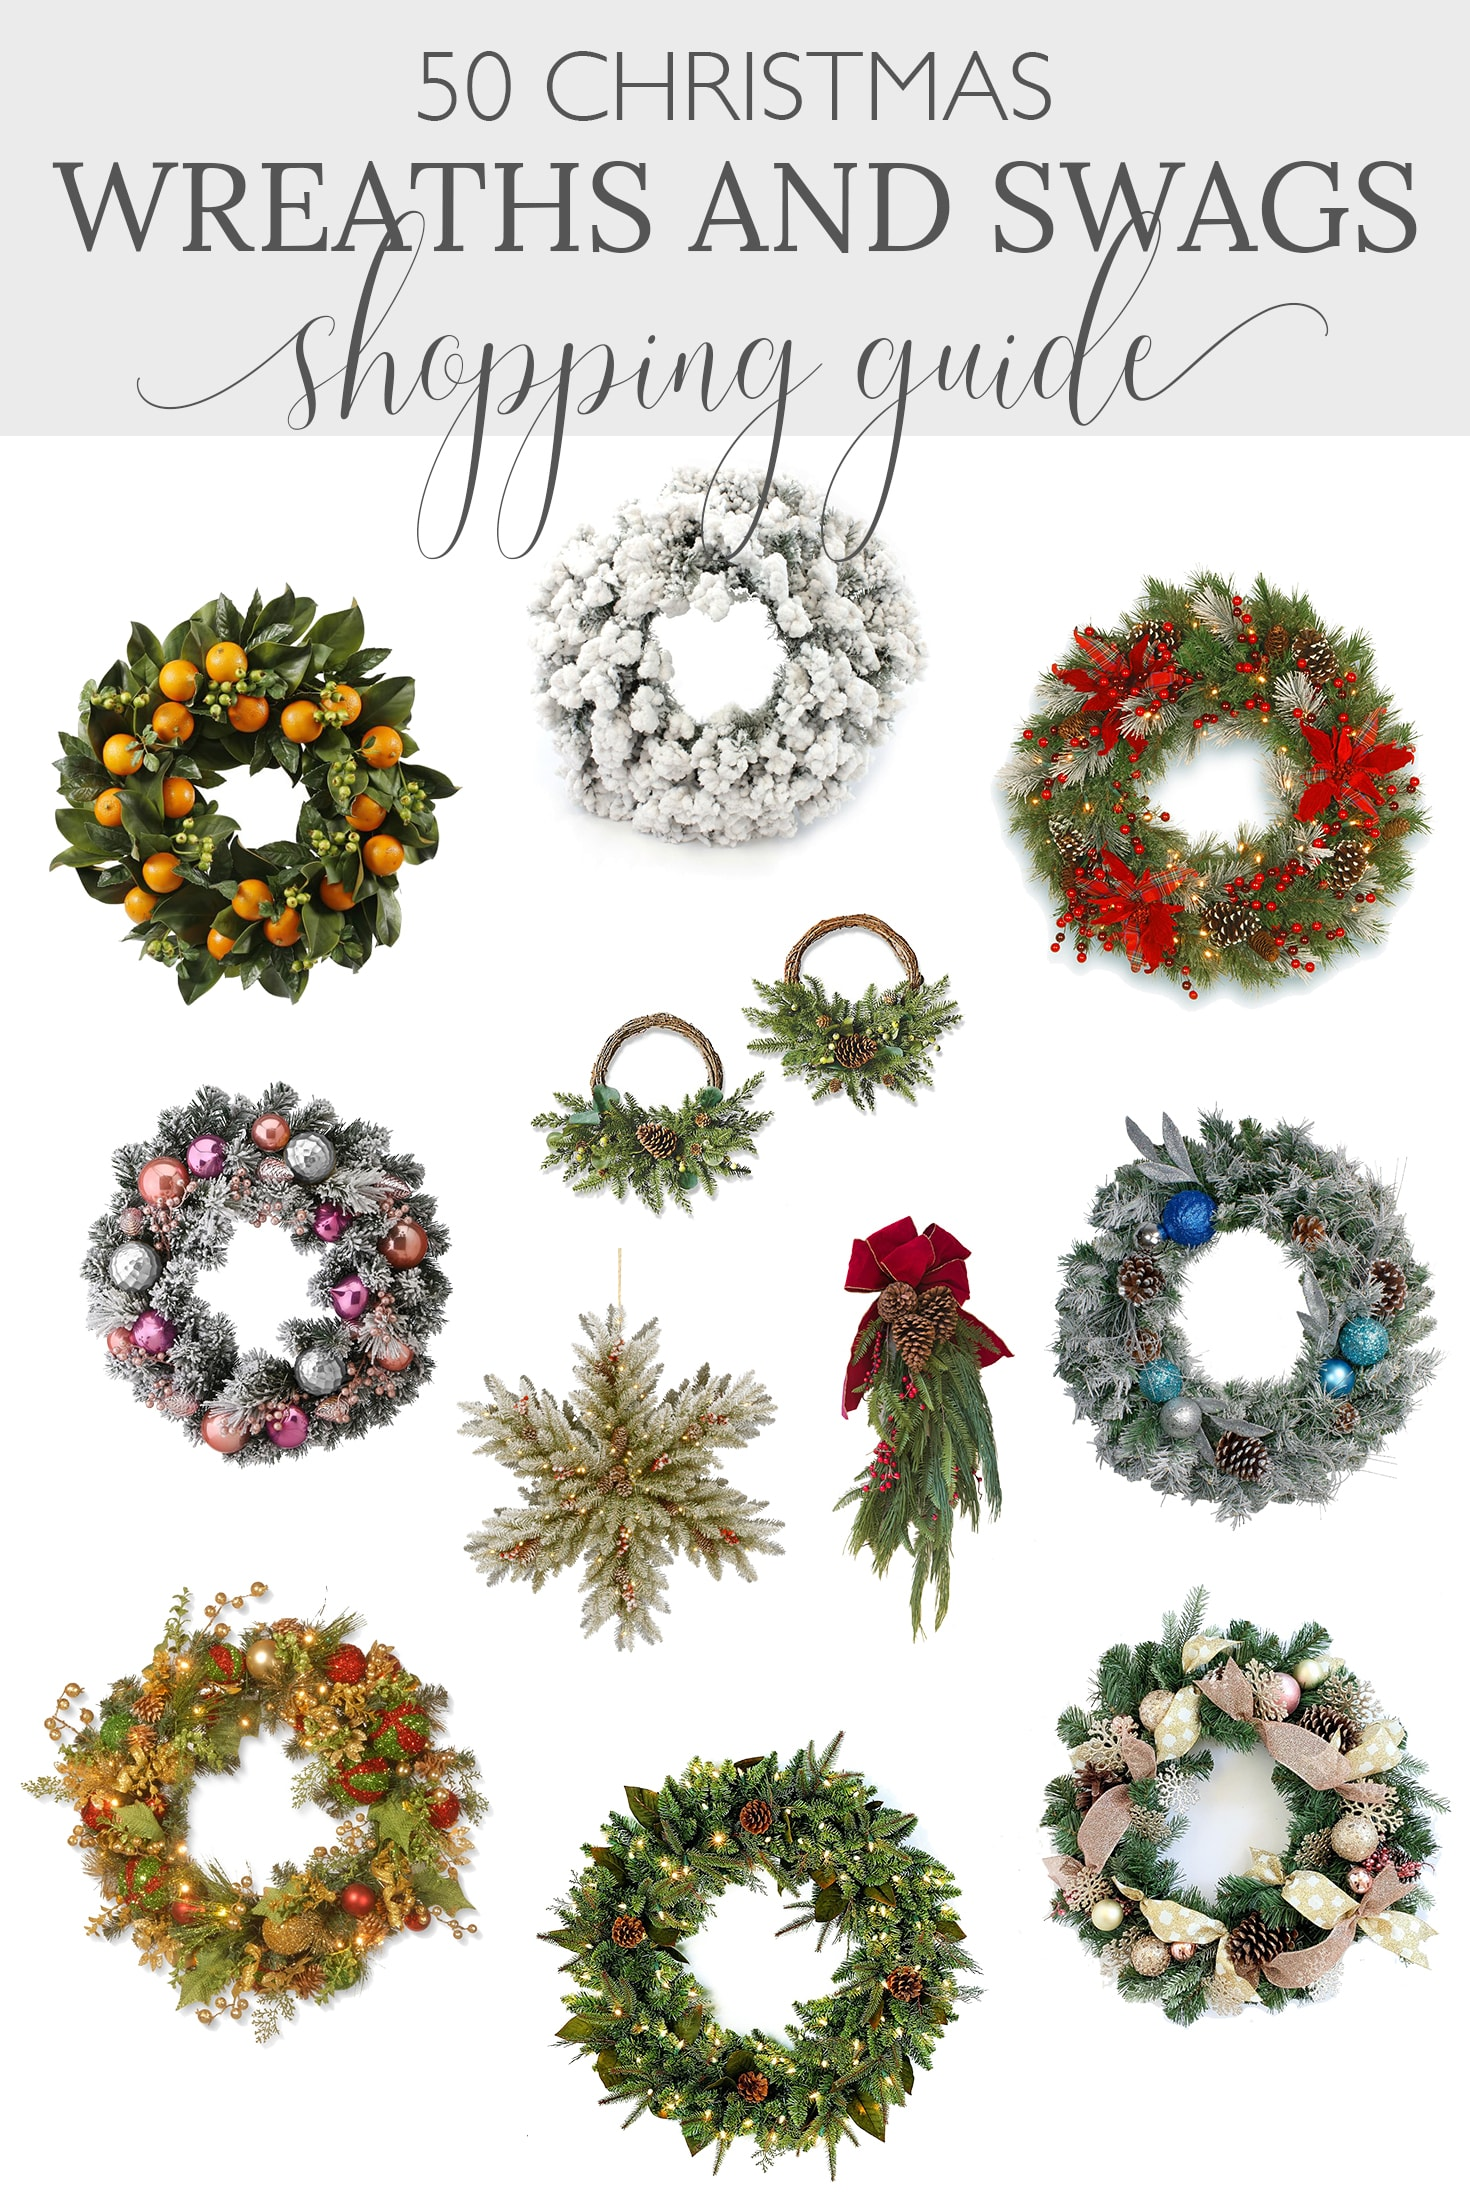 Holiday Wreaths and Swags